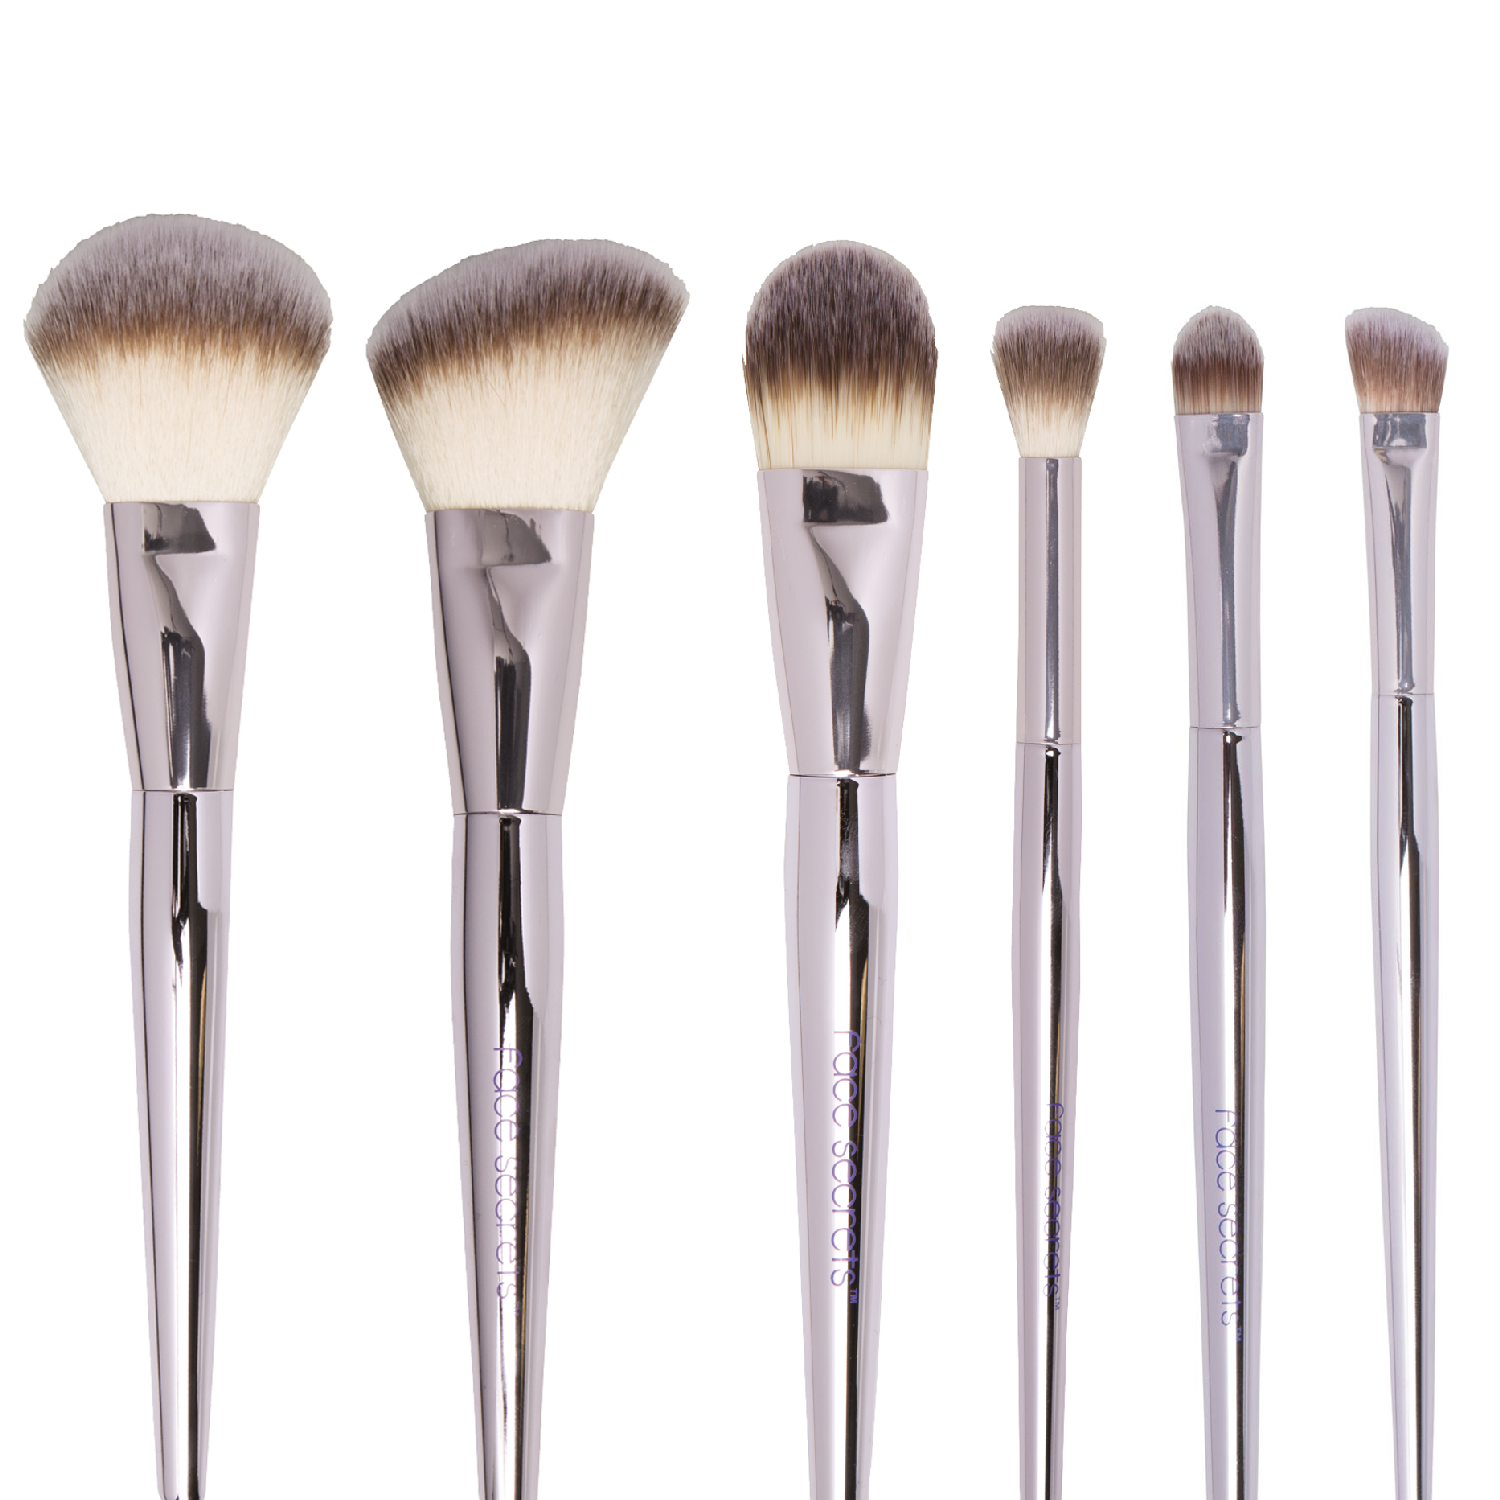 Beauty Secrets 6 Piece Cosmetic Brush Set | Makeup Brushes